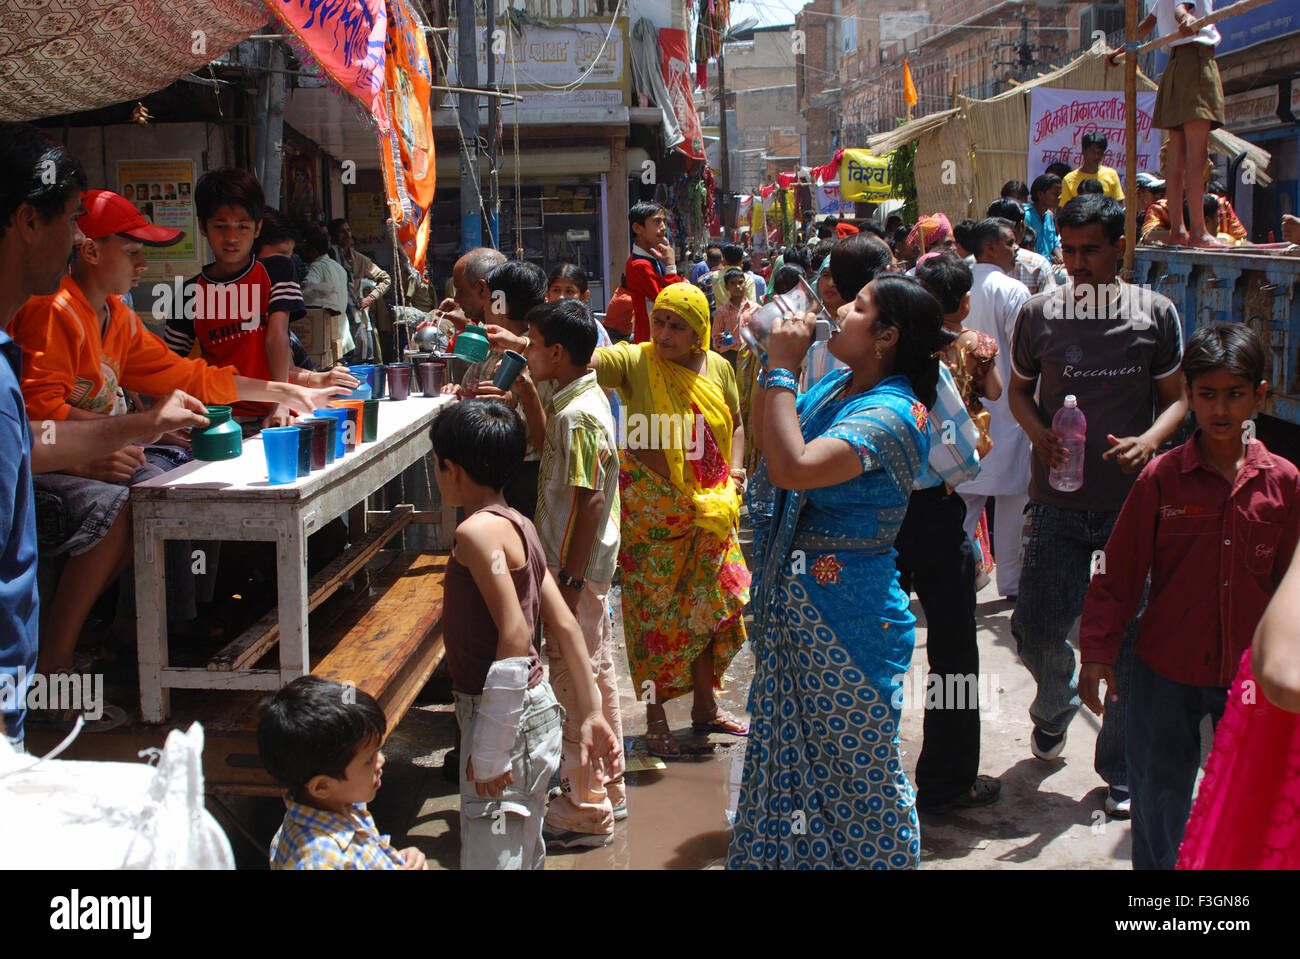 Visitors quenching thirst with cool water in Ramnavmi Procession ; Jodhpur ; Rajasthan ; India - Stock Image